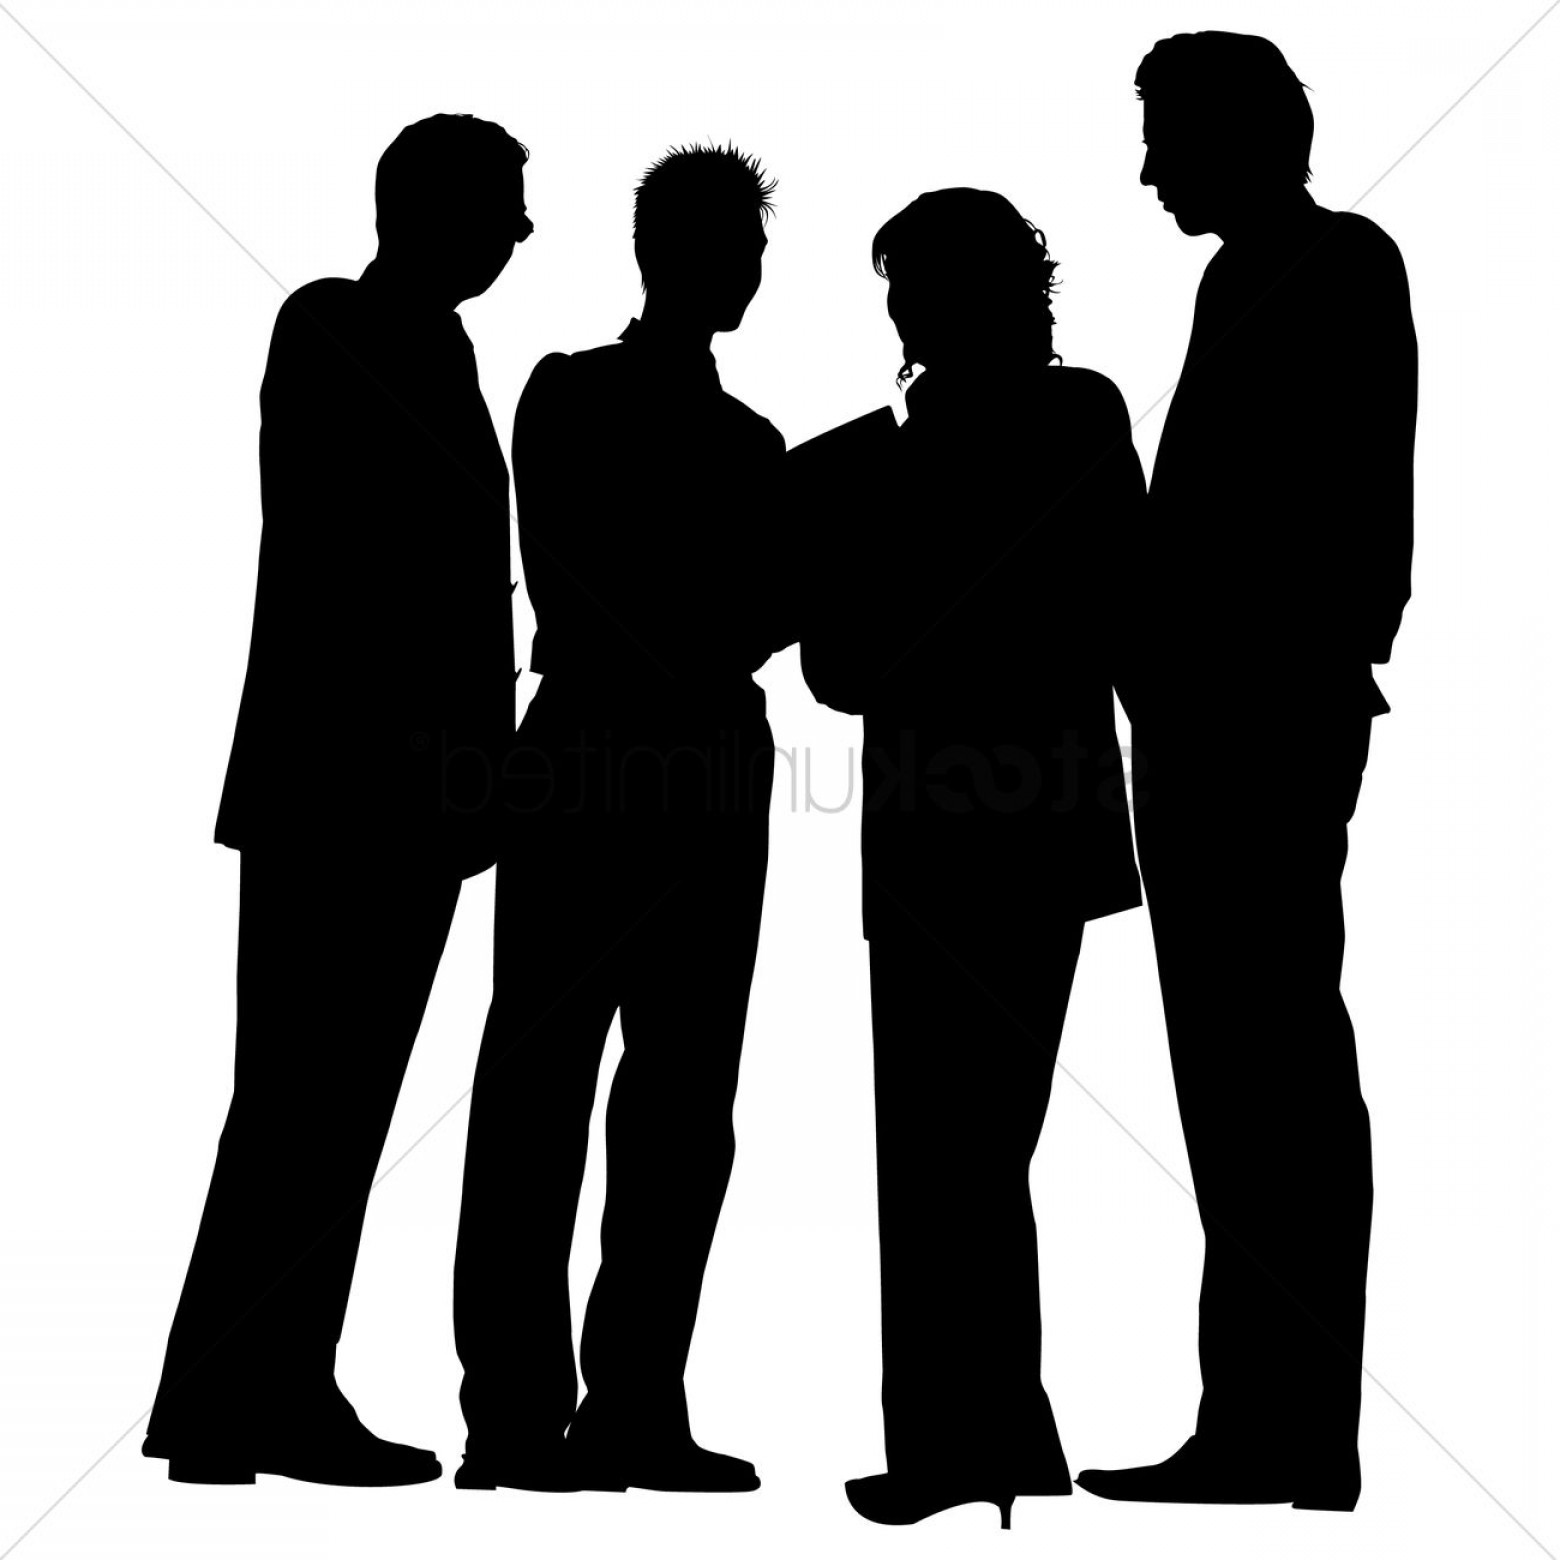 Sillouhette Vector Group: Group Of Business People Standing Silhouette